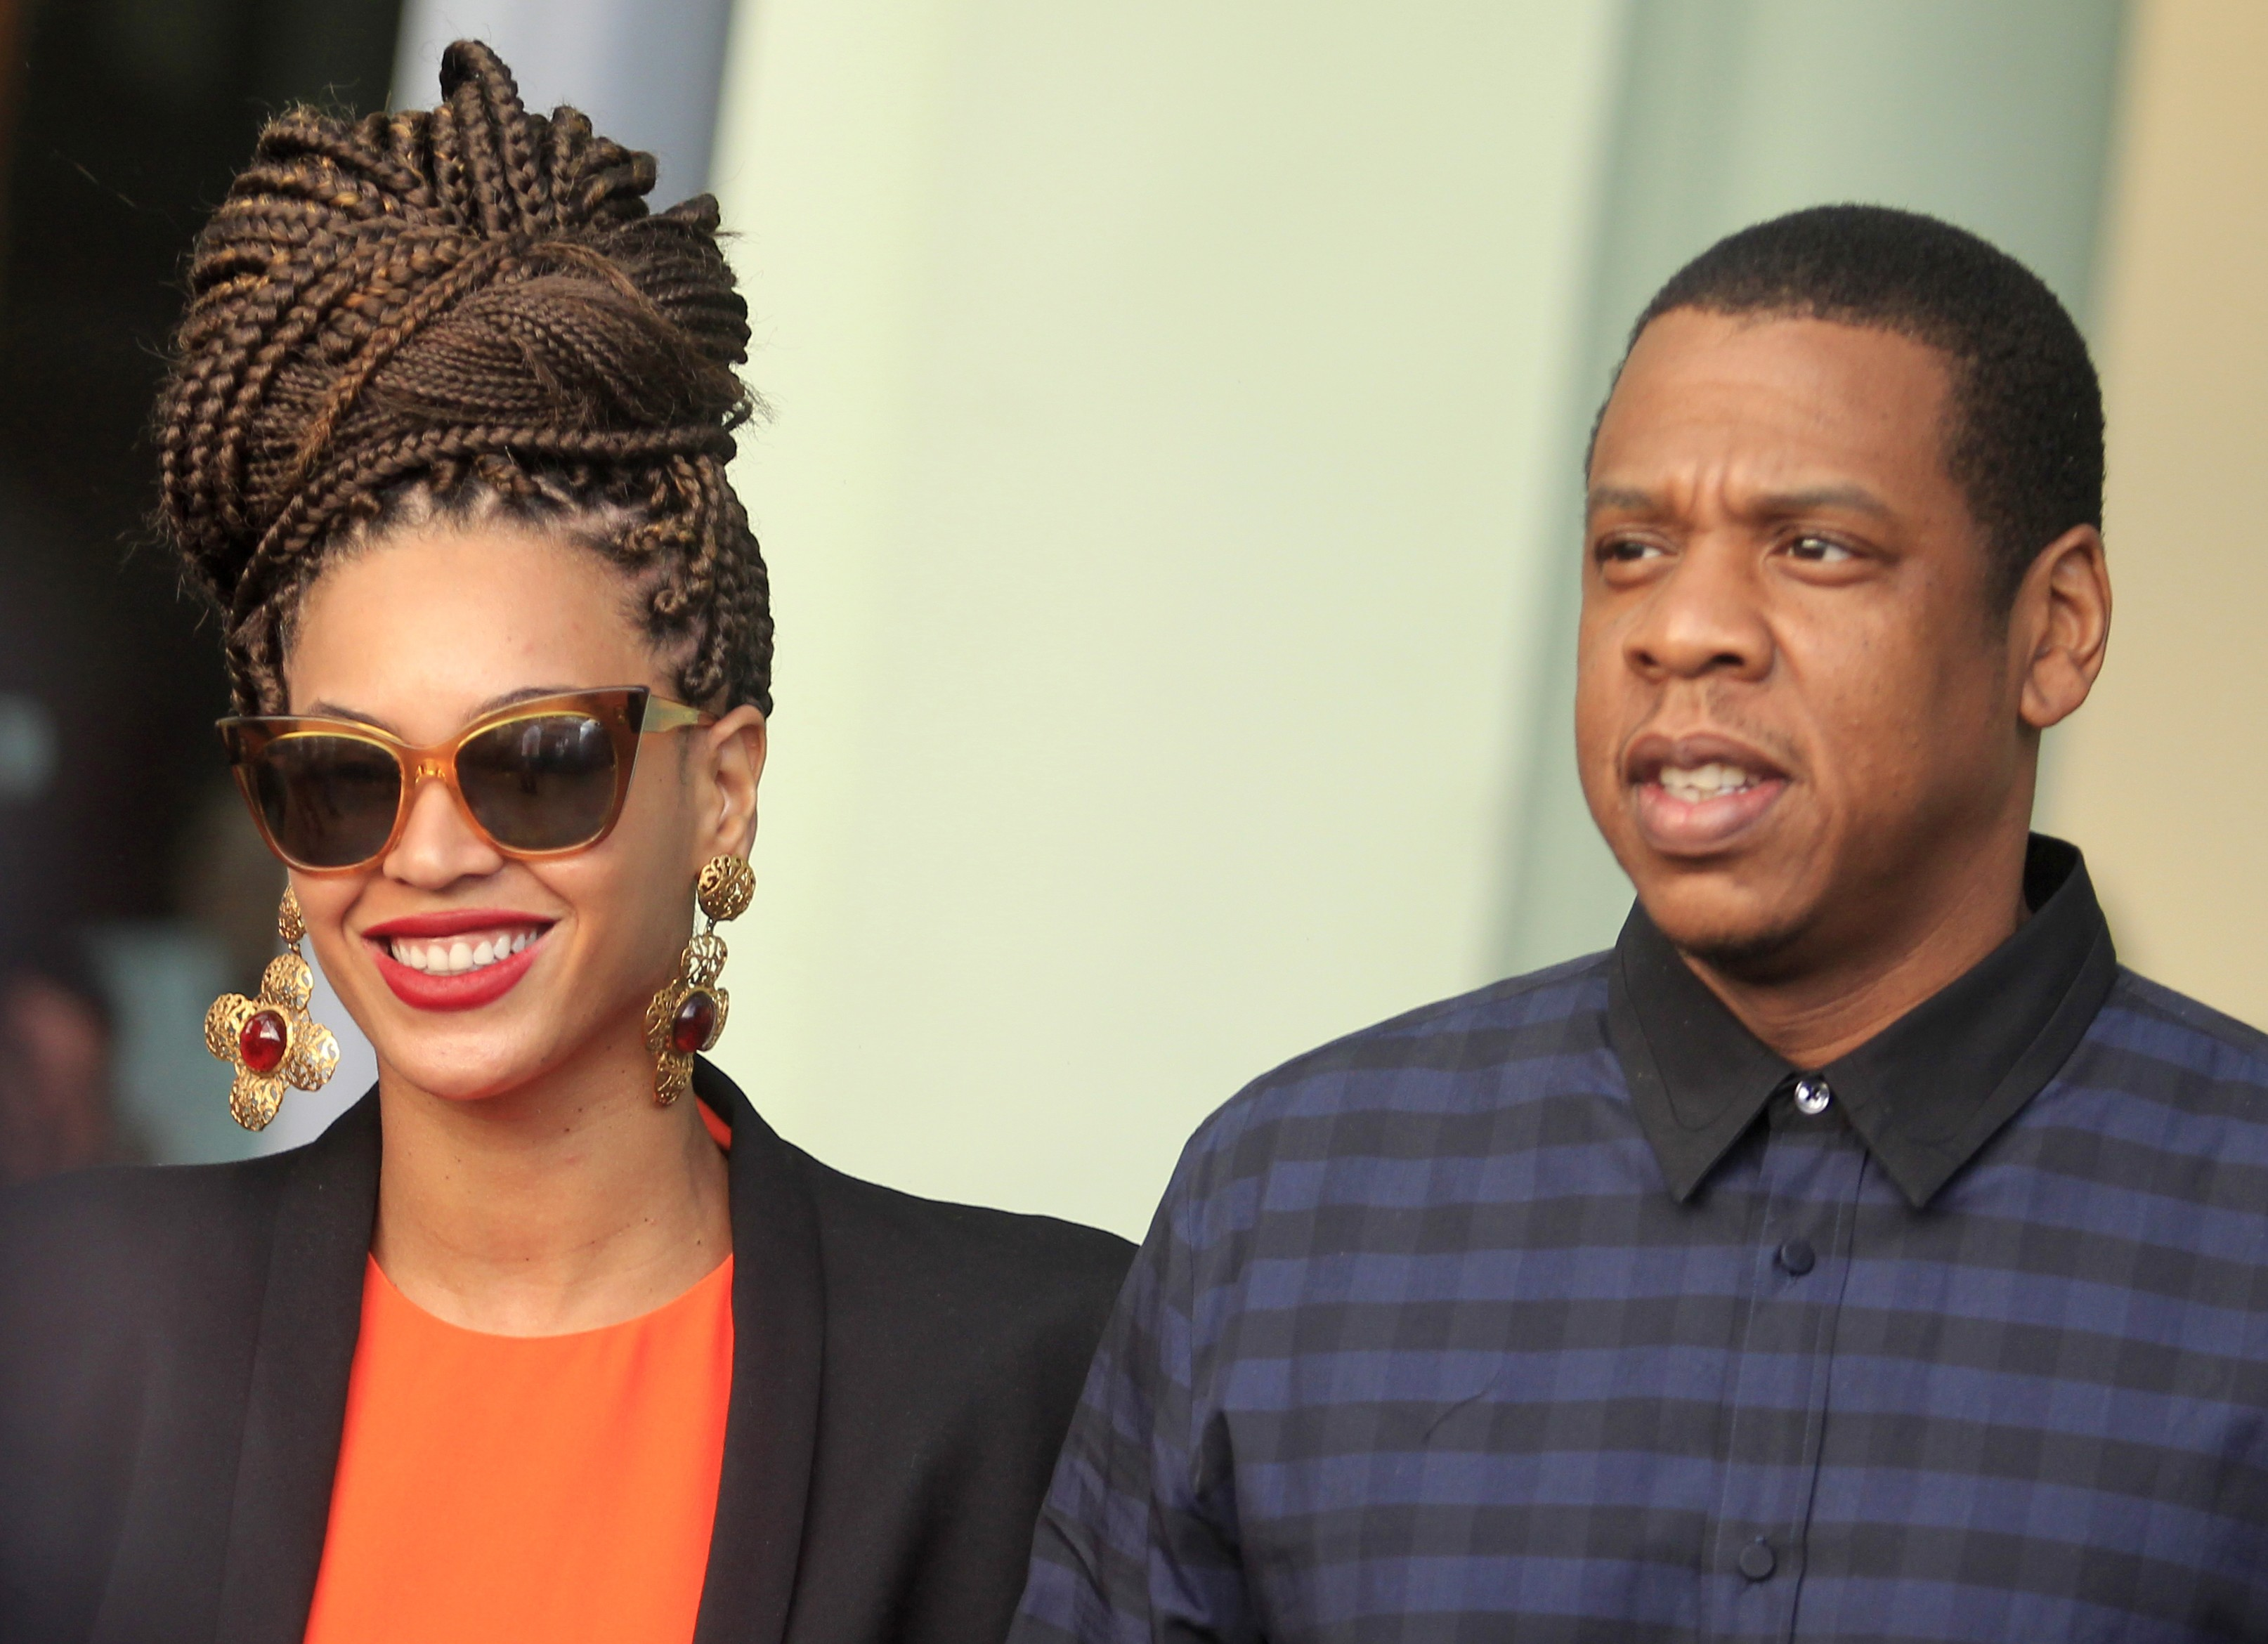 U.S. singer Beyonce and her husband rapper Jay-Z walk as they leave their hotel in Havana on April 4, 2013.